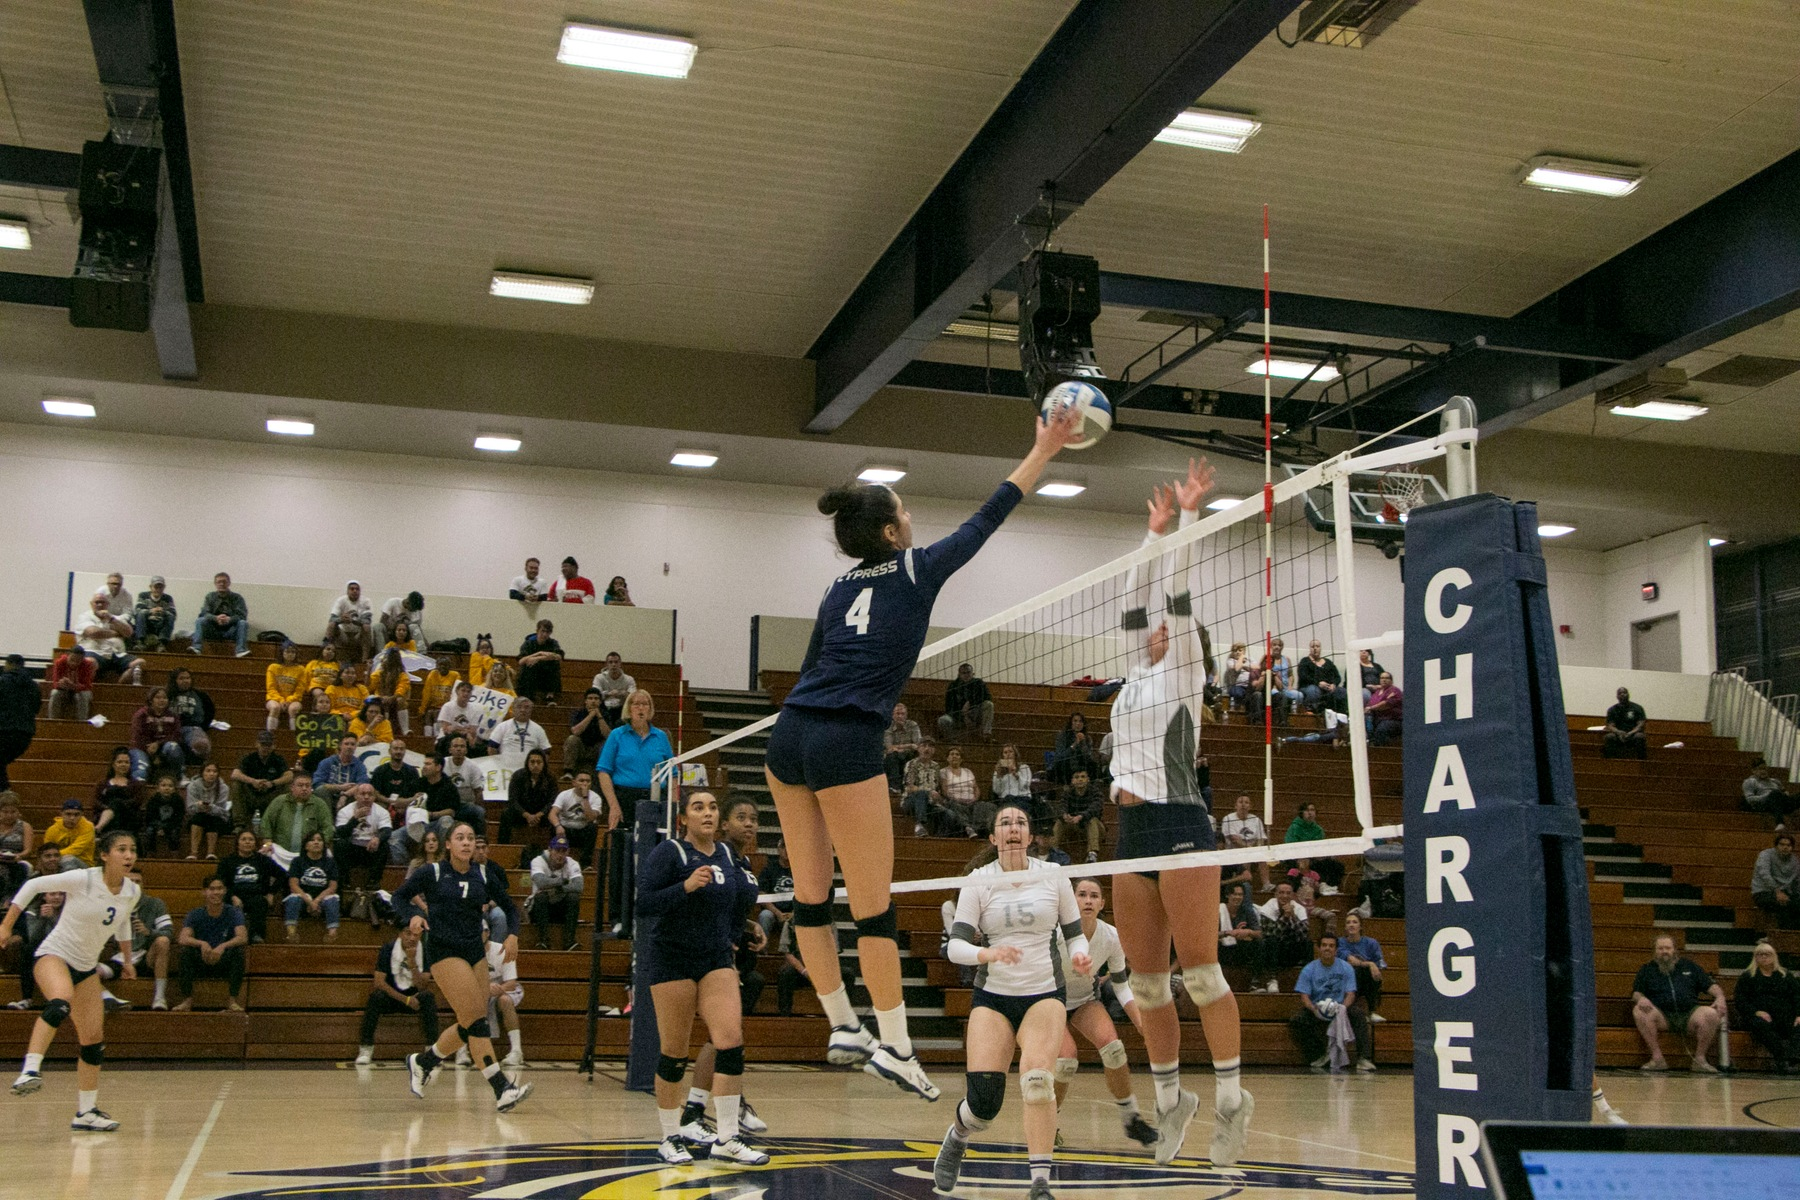 Chargers Top No. 1 IVC in Regular Season Finale; End Lasers' 45-Match Win Streak